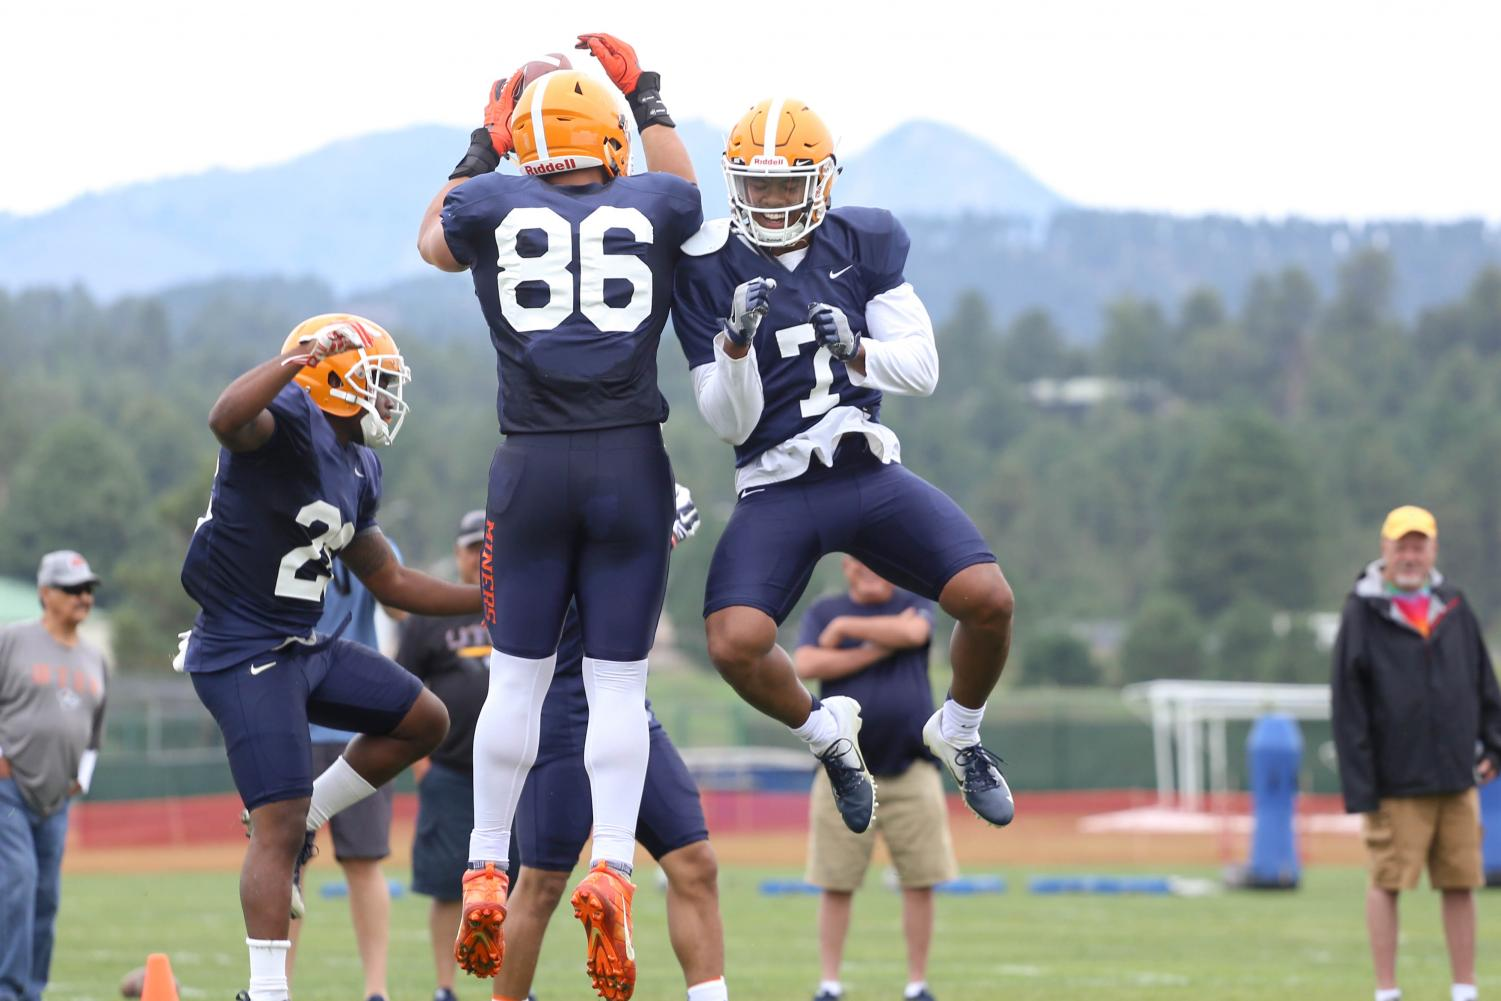 Tight+end+Josh+Weeks+and+wide+receiver+Kavika+Johnson+celebrate+after+Weeks+makes+the+catch.